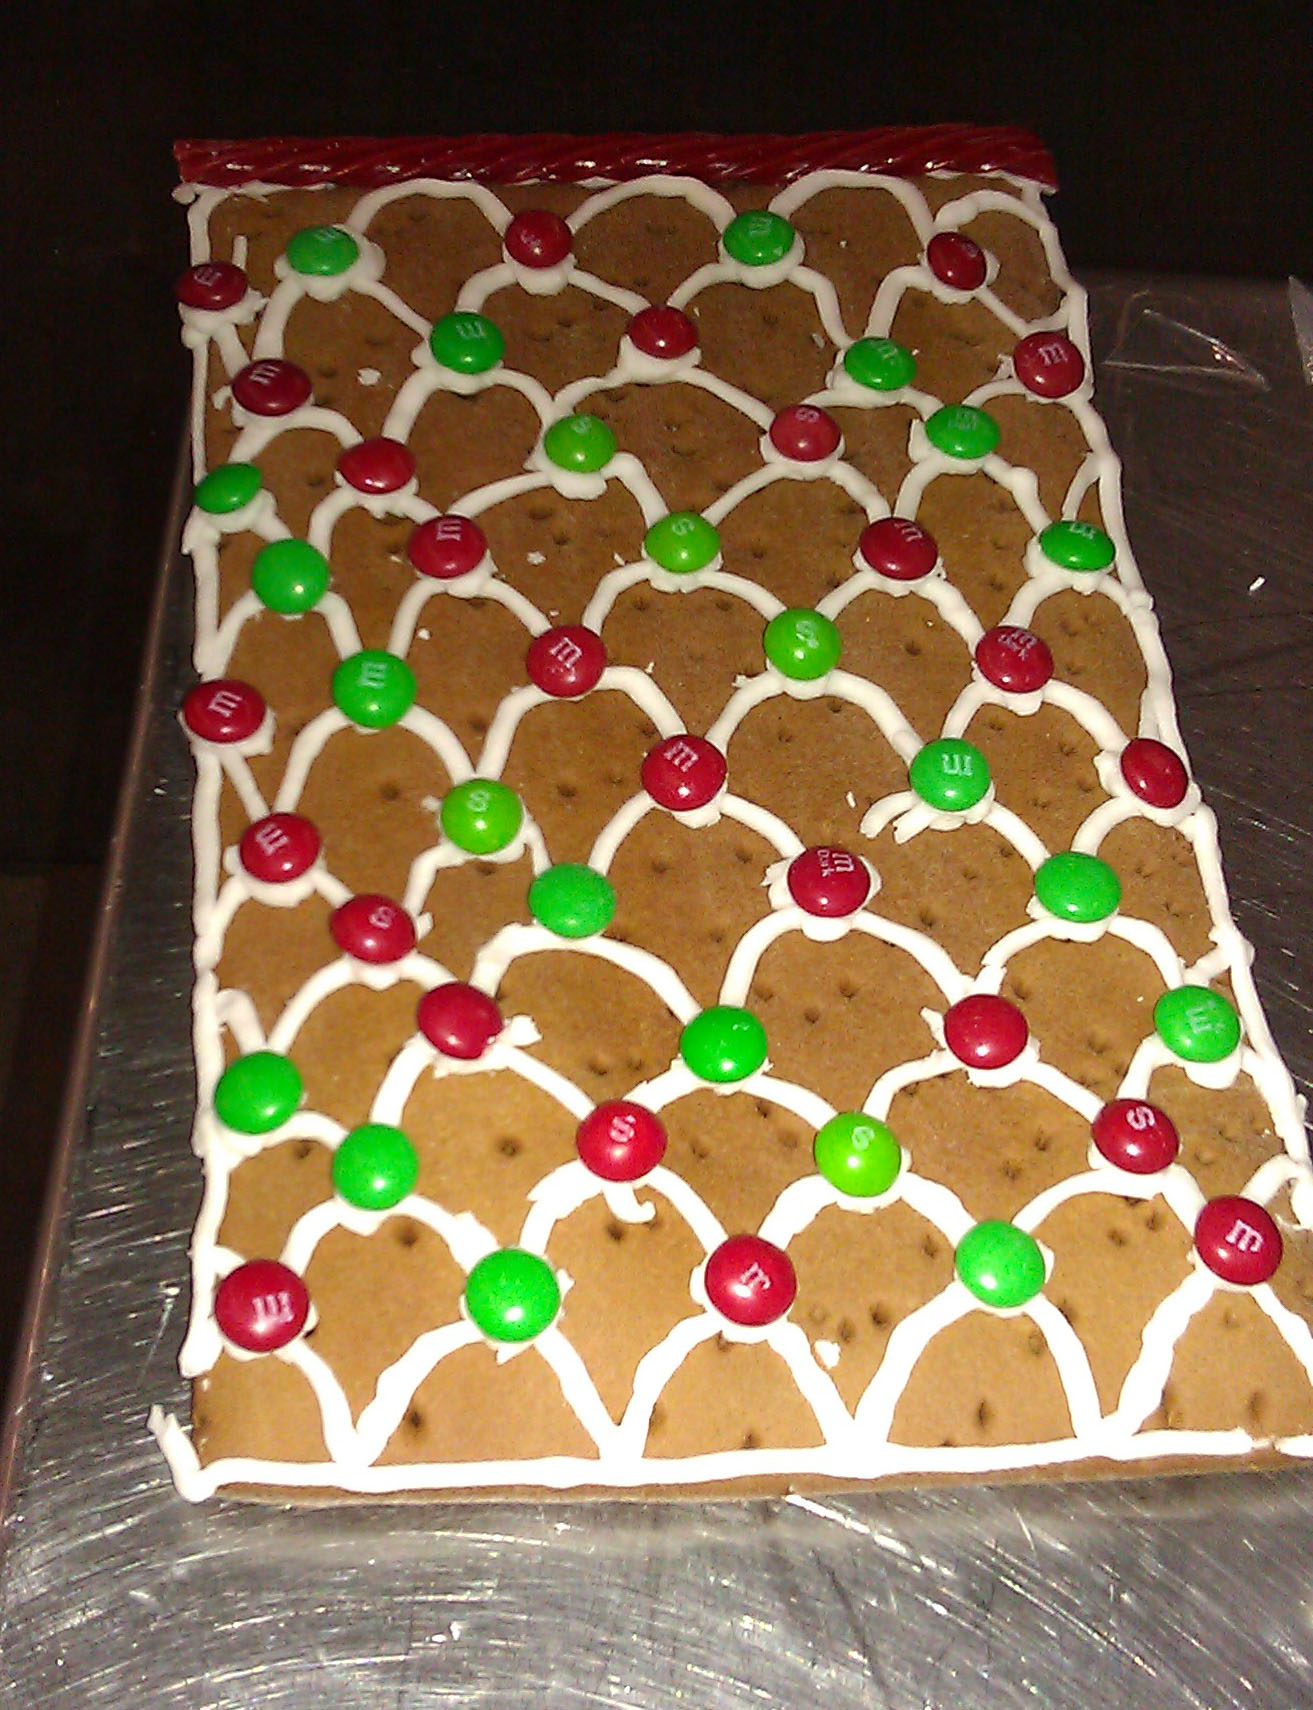 ... : Creative Gingerbread House Ideas , Awesome Gingerbread Houses